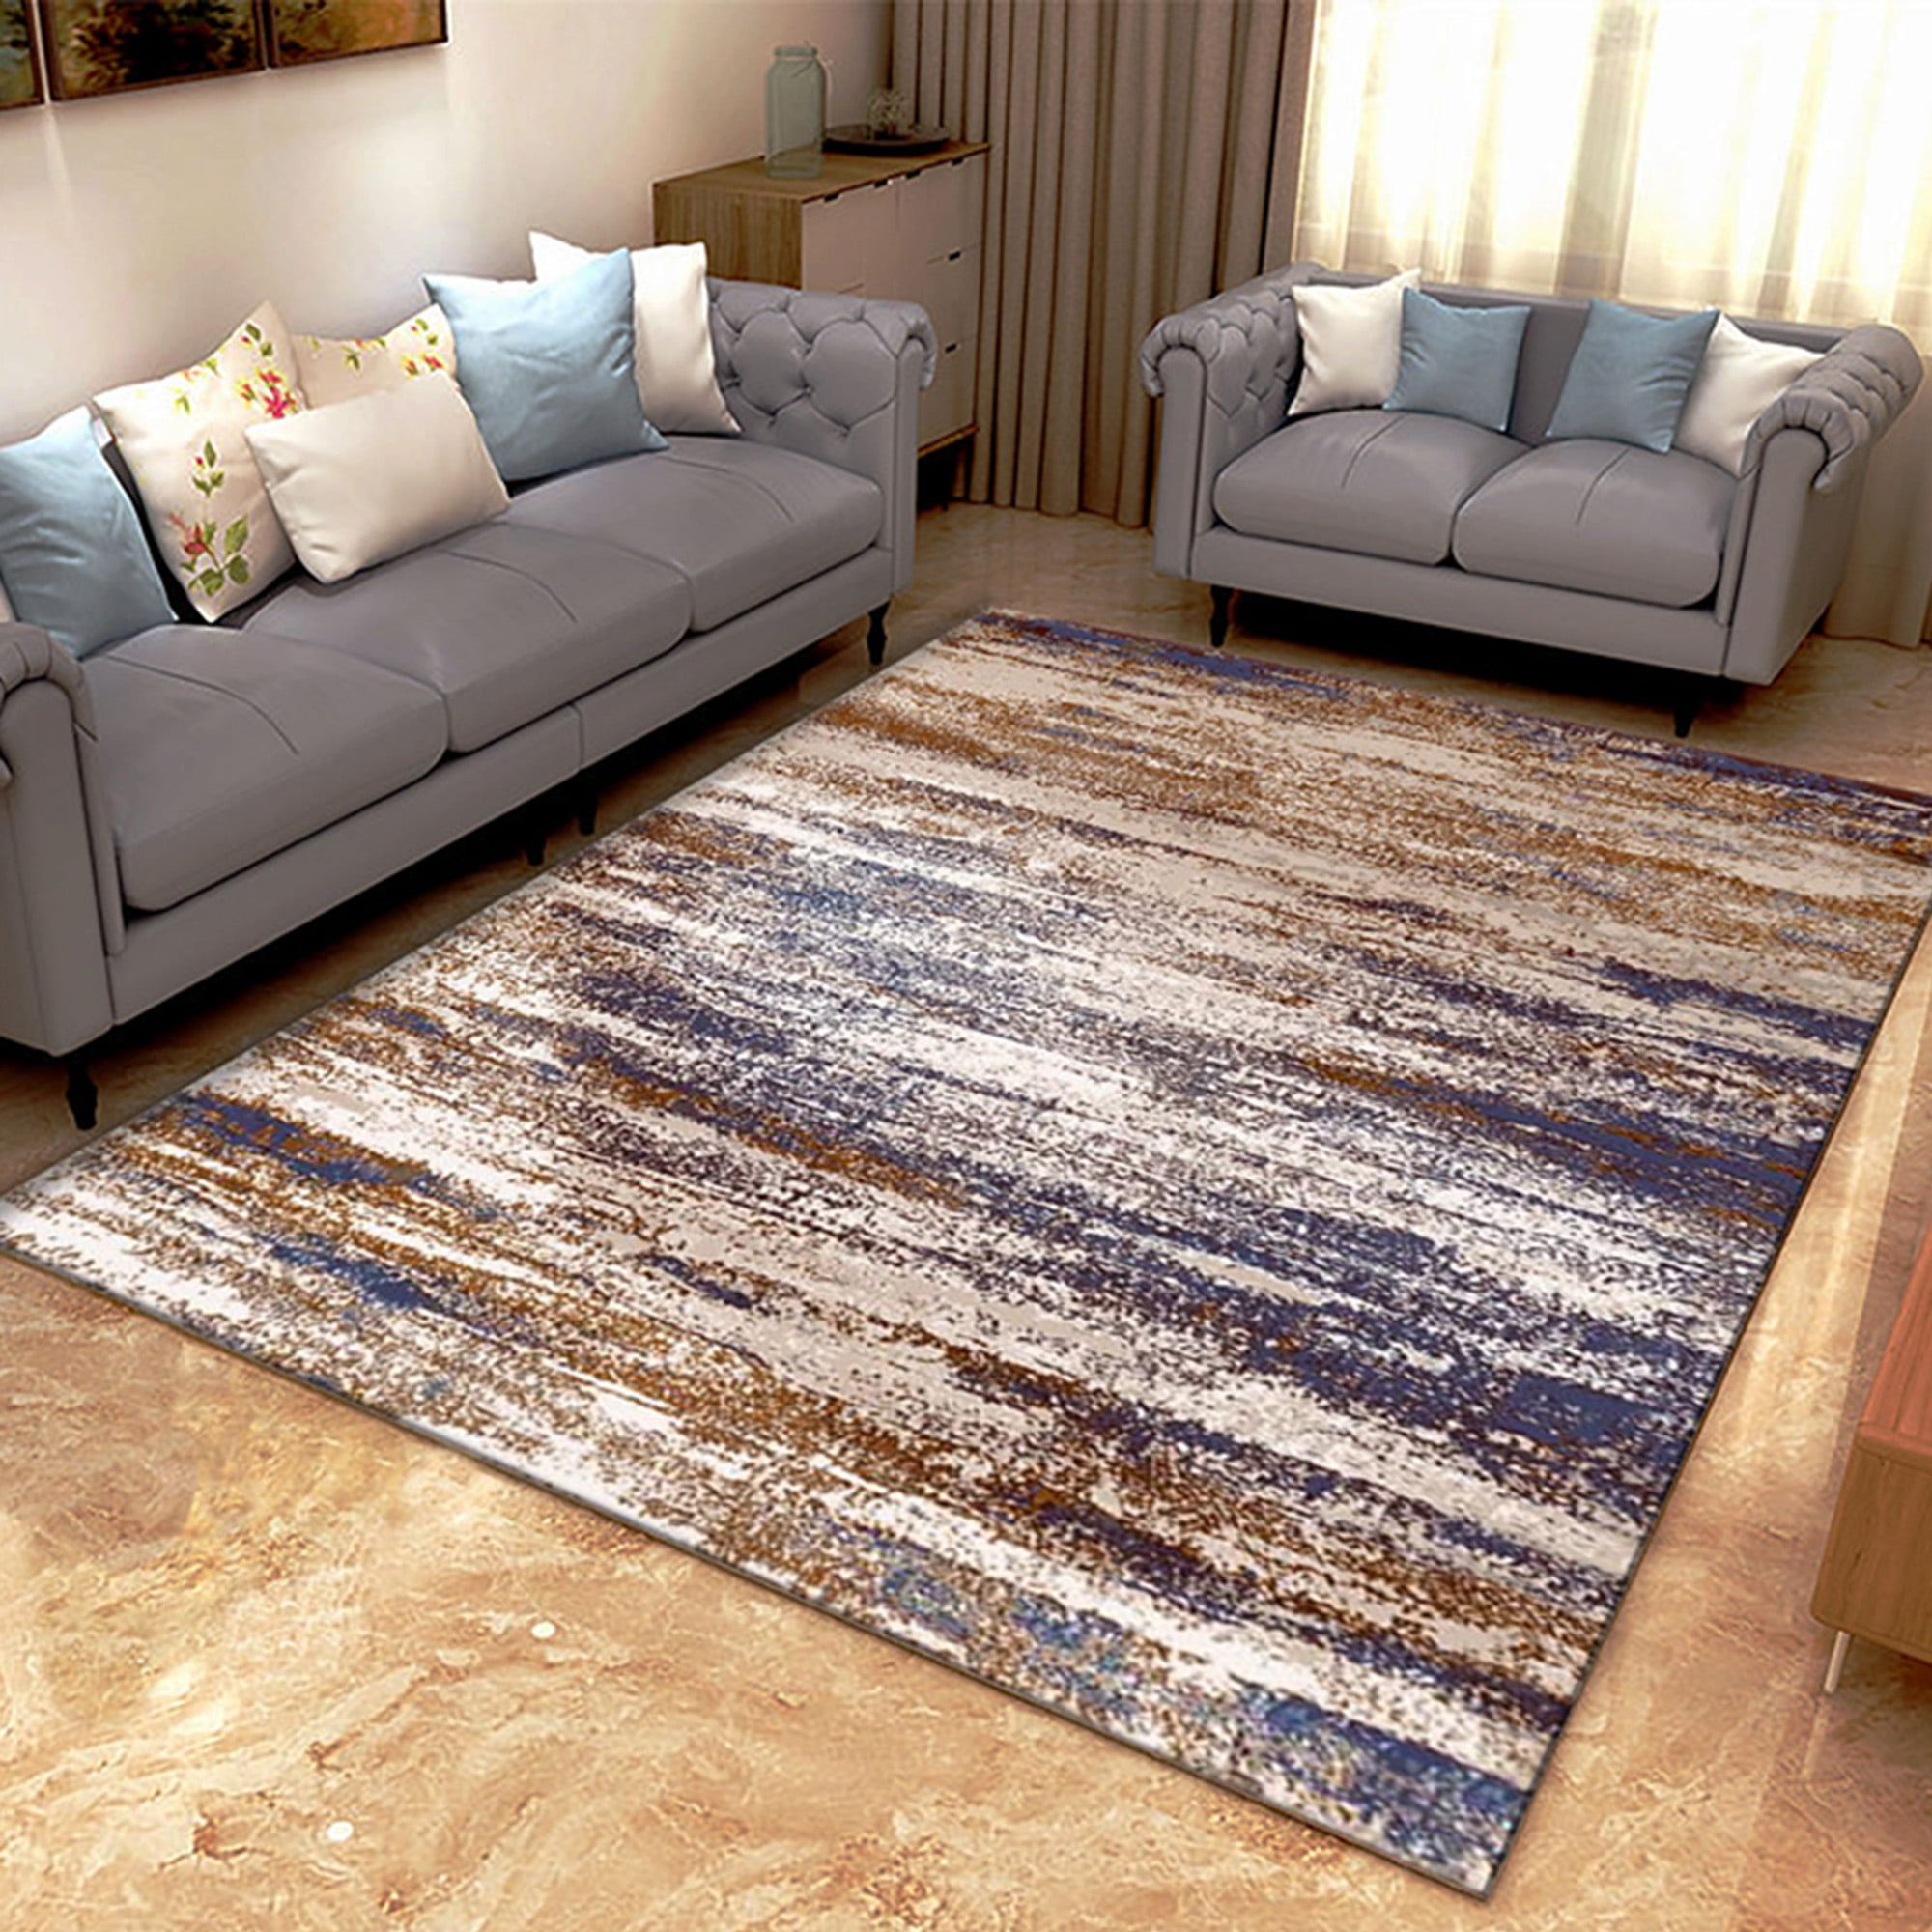 Nk Abstract Faded Area Rug Or Runner Boho Vintage Diamond Blue Brown Gray Bohemian Easy Cleaning For Bedroom Kitchen Living Room Non Shedding Walmart Com